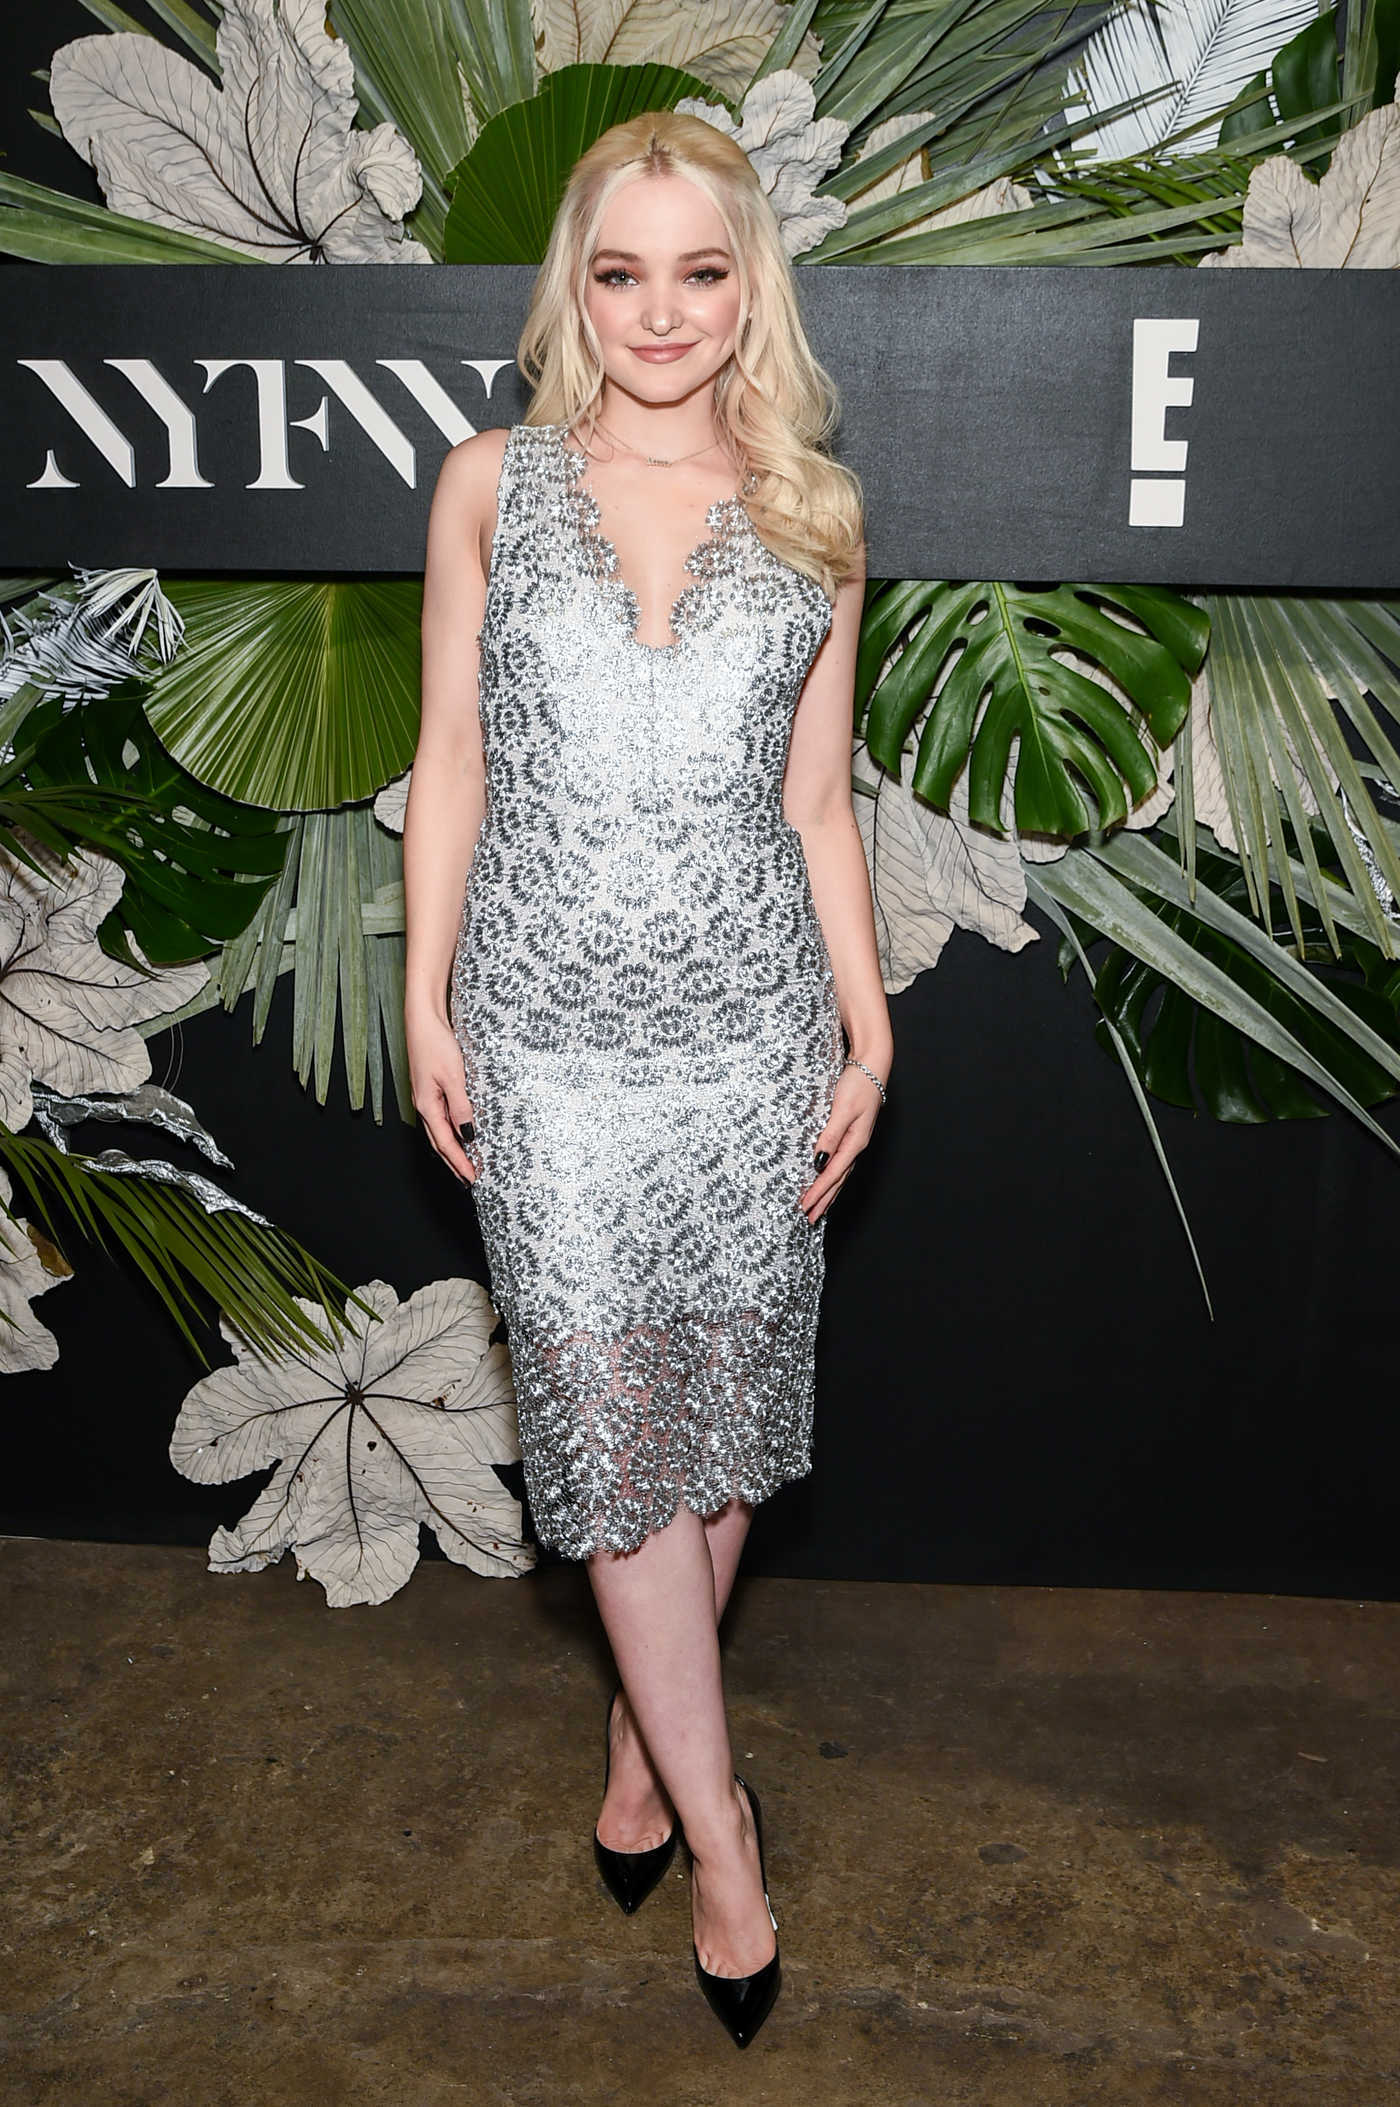 Dove Cameron at the E!, Elle and IMG Fashion Week Kick off in New York City 02/08/2017